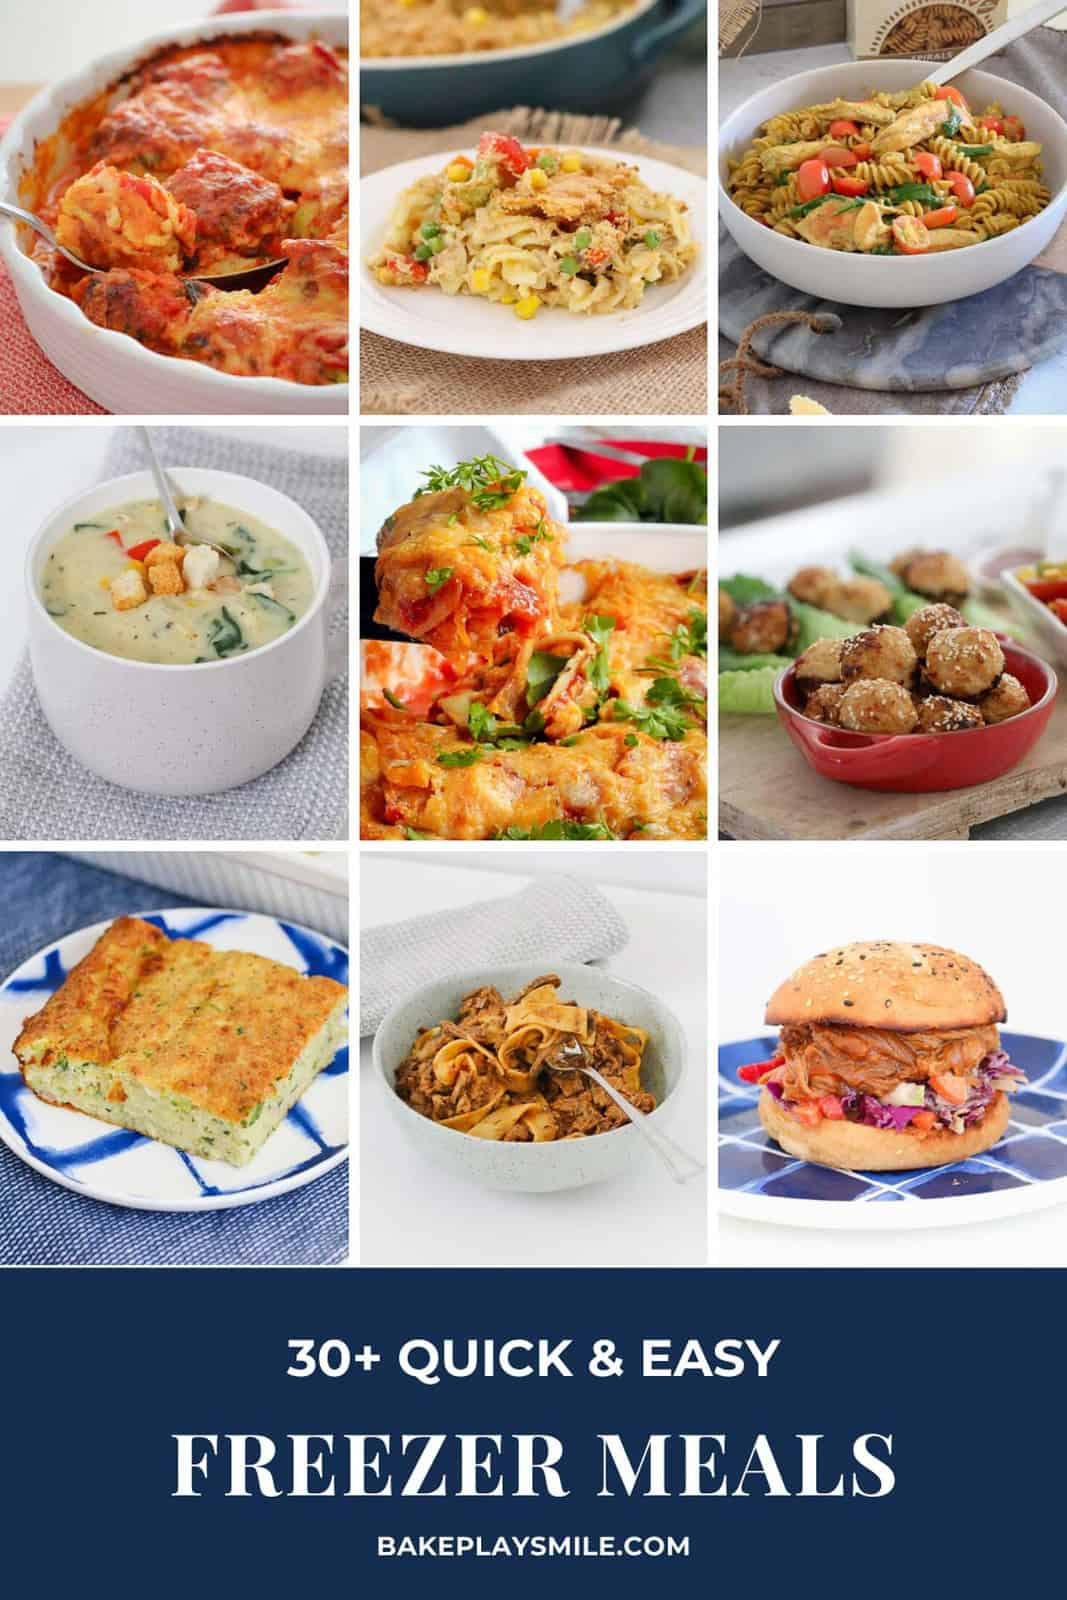 A collection of images of homemade main meals that can be frozen.